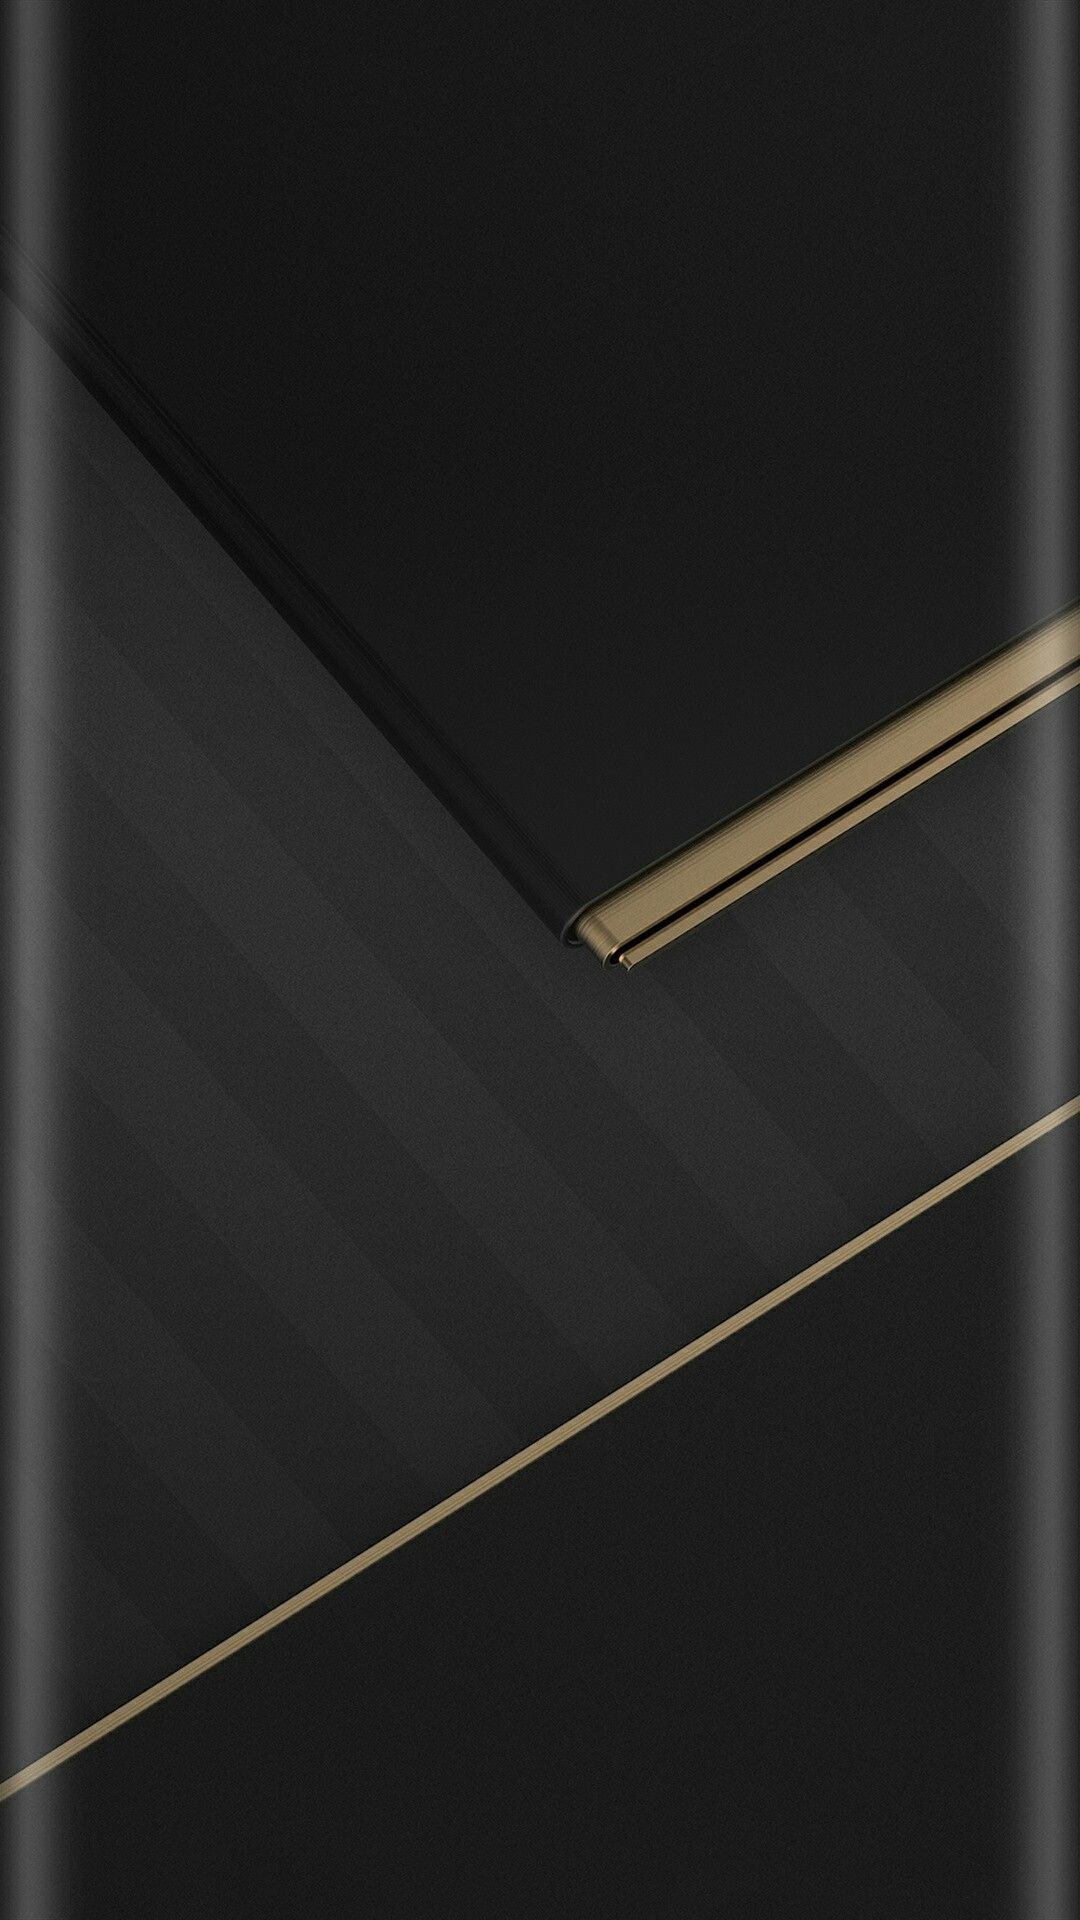 C9 Iphone Wallpaper Grey Stripes Black And Gold Wallpaper Abstract And